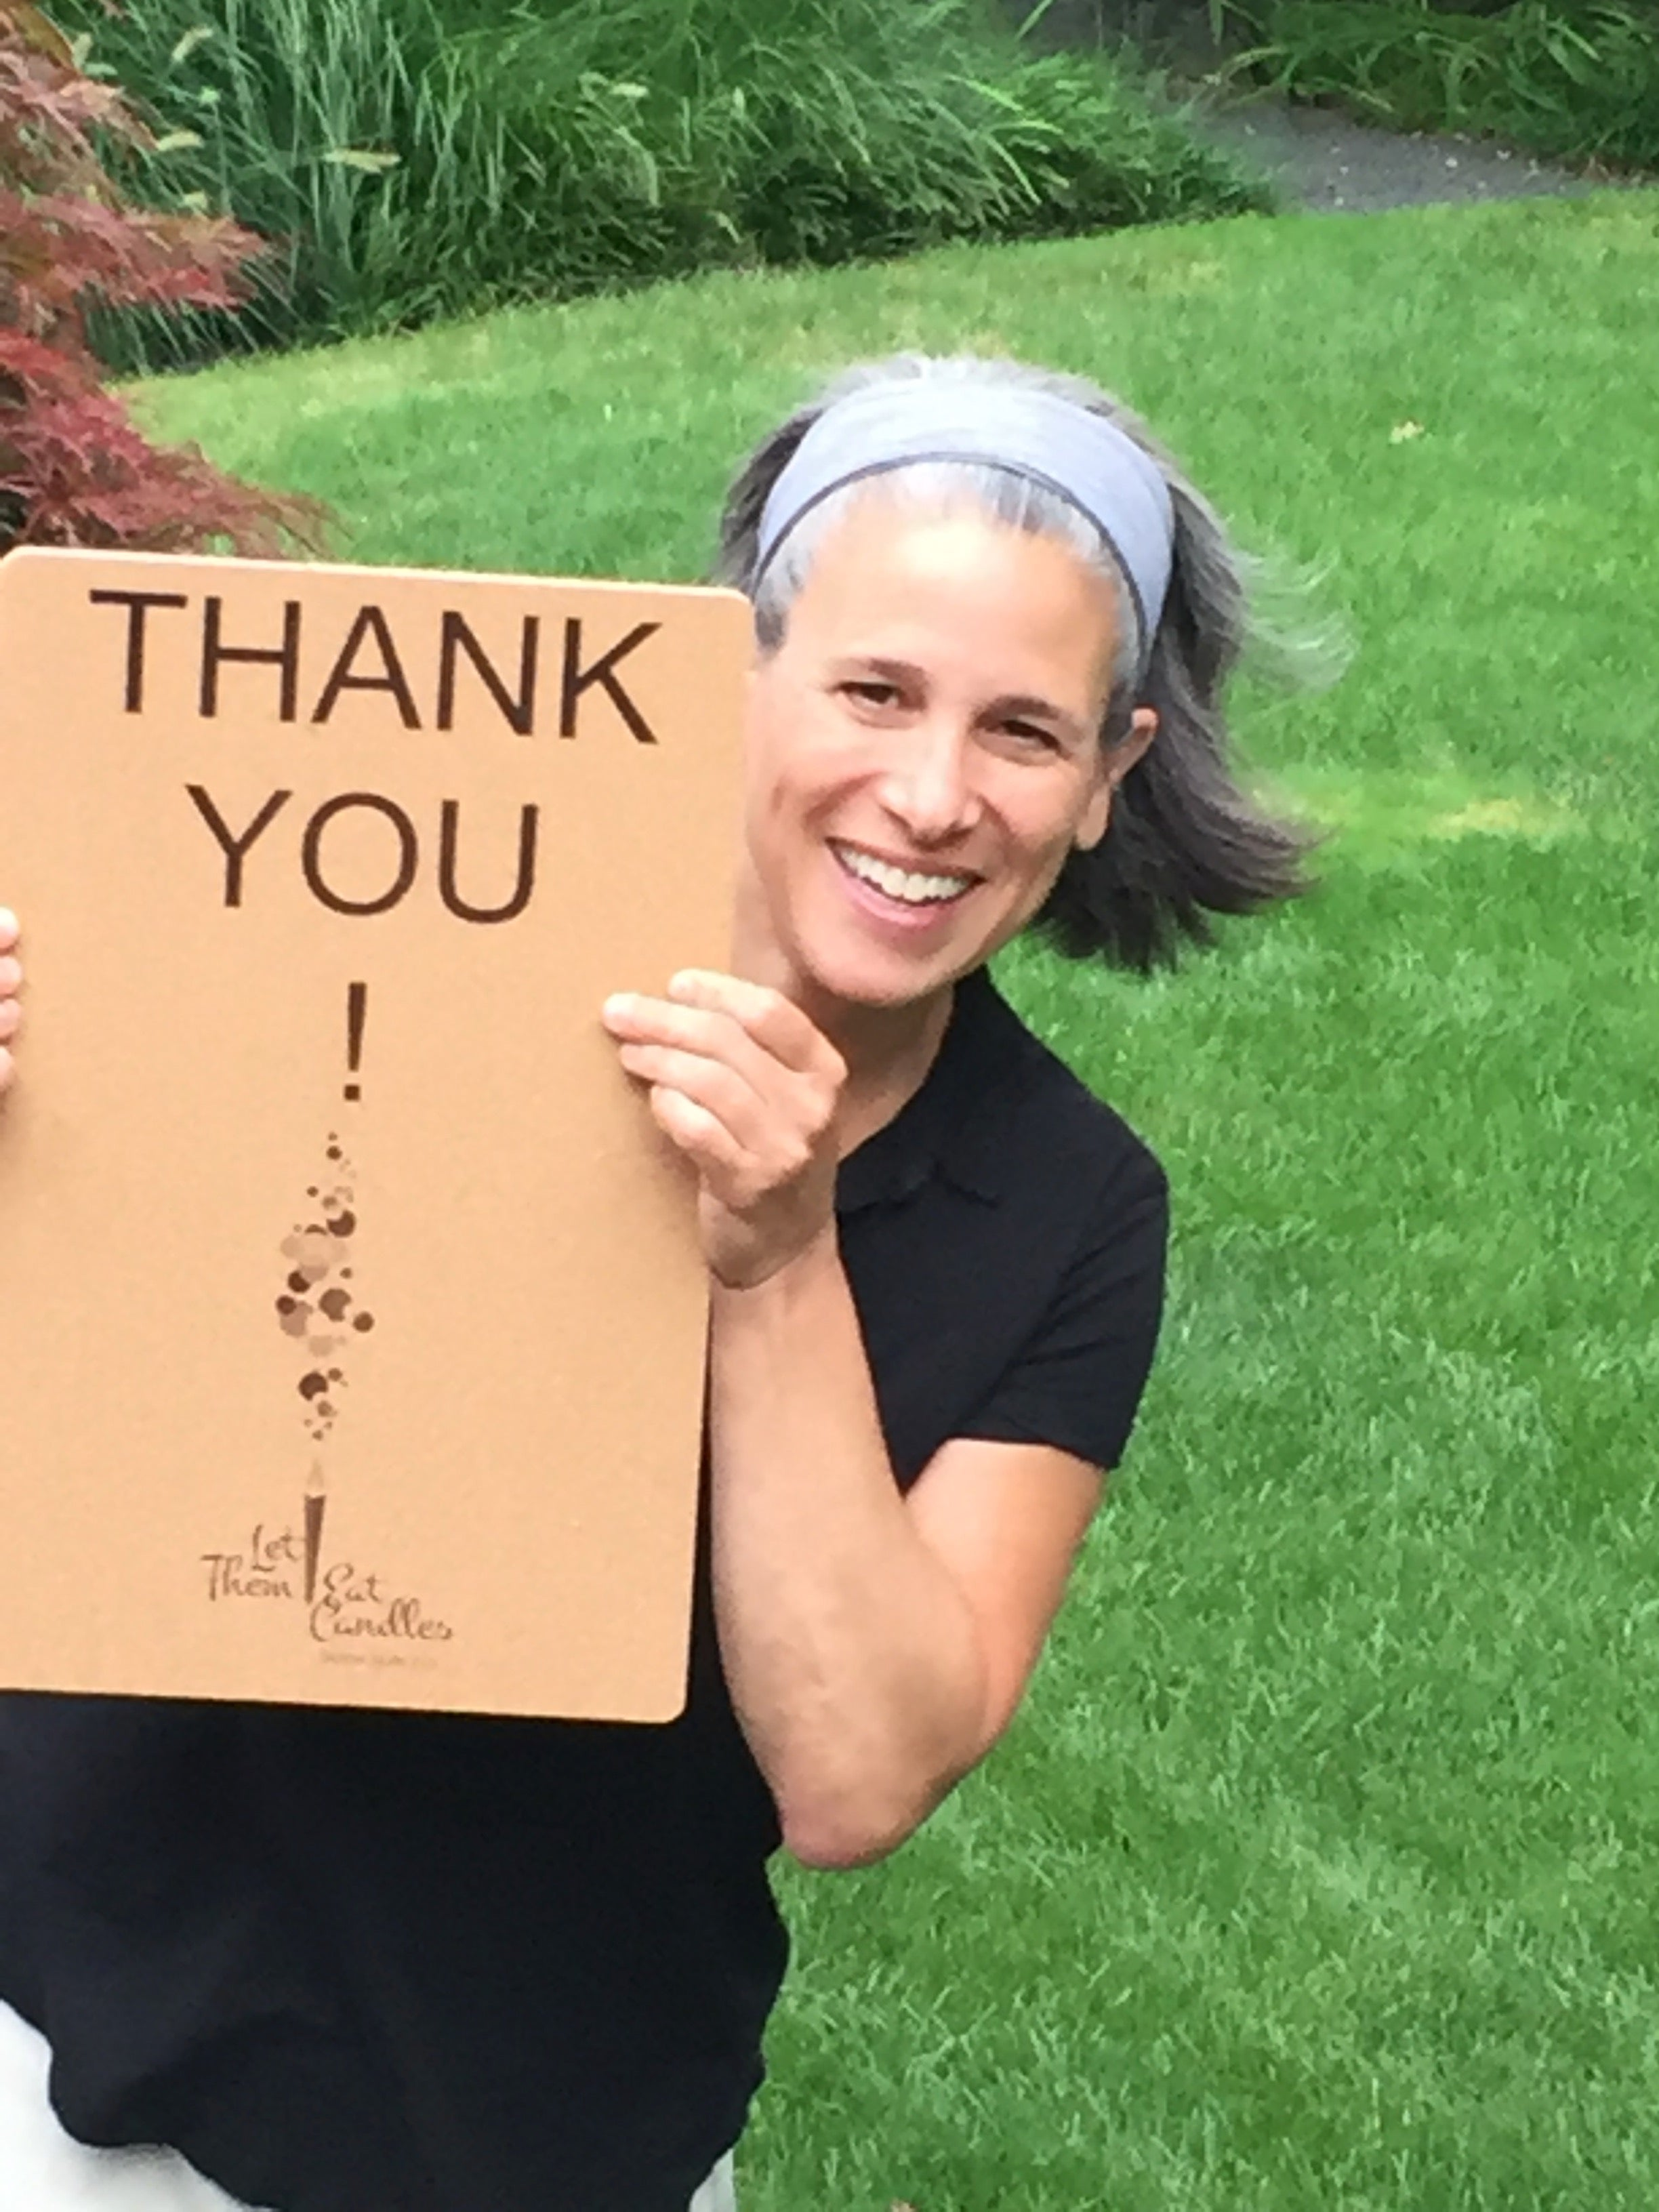 Loree says Thank you!